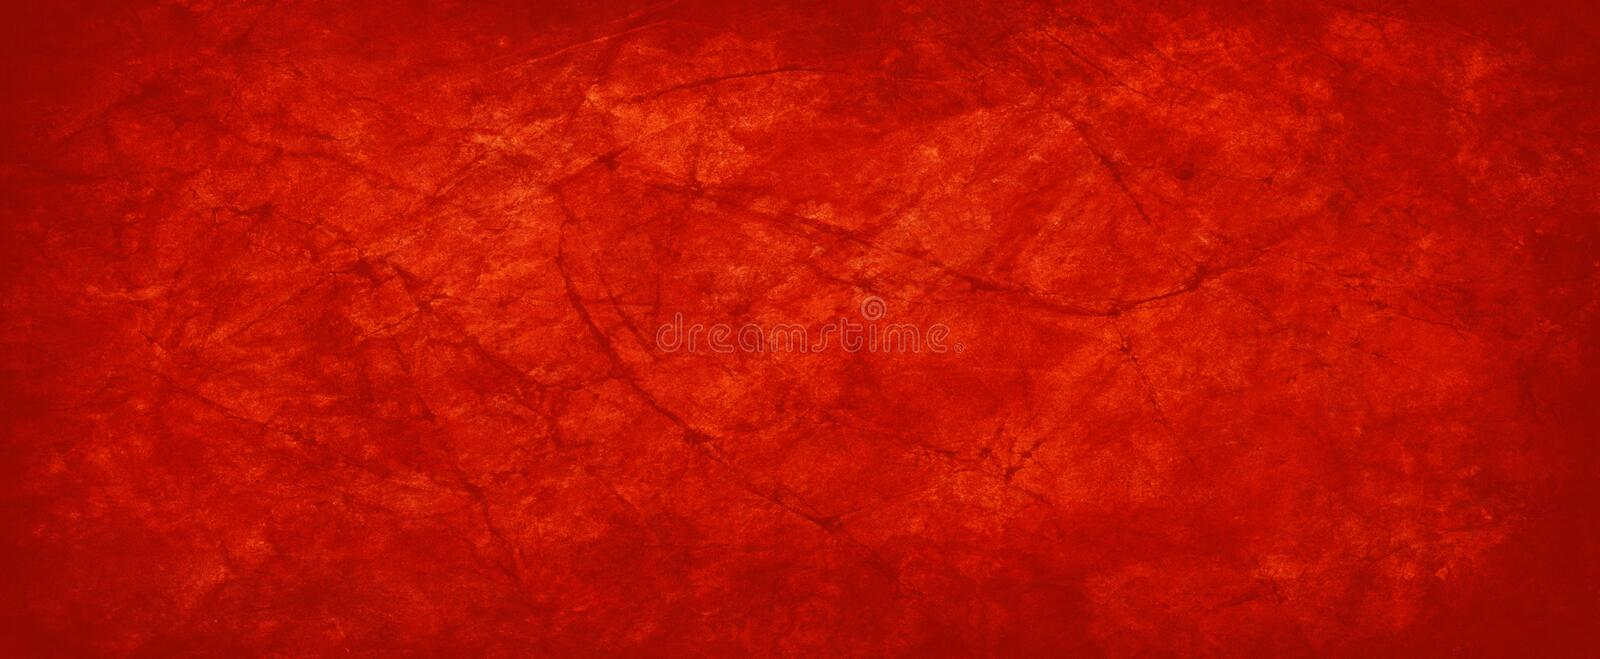 Red paper background with old vintage texture and grunge in wrinkled creased paper illustration, Christmas background stock photos